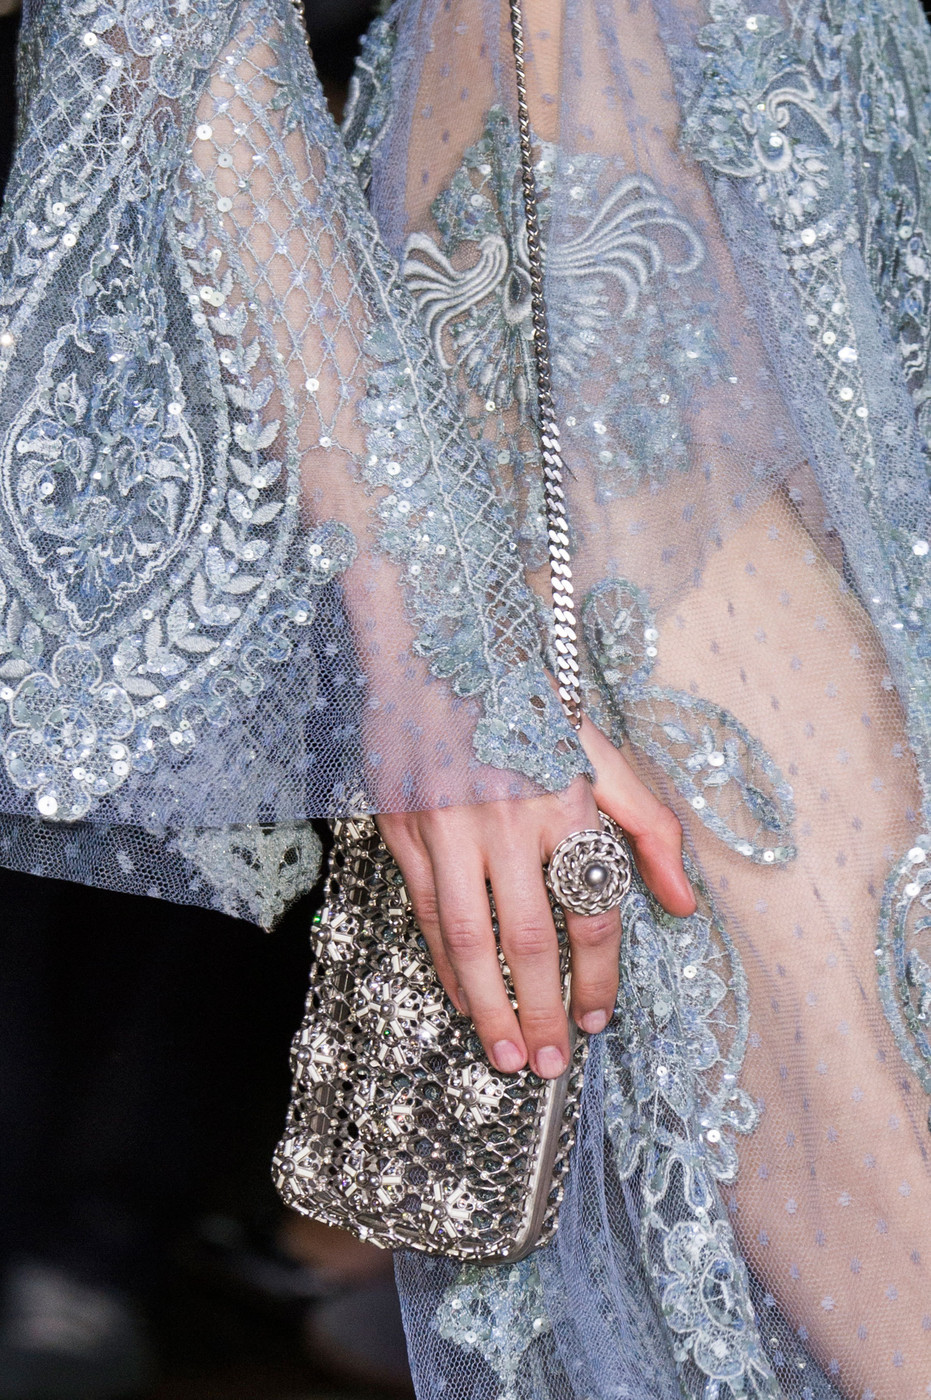 Elie saab at couture spring 2016 livingly for Haute couture details